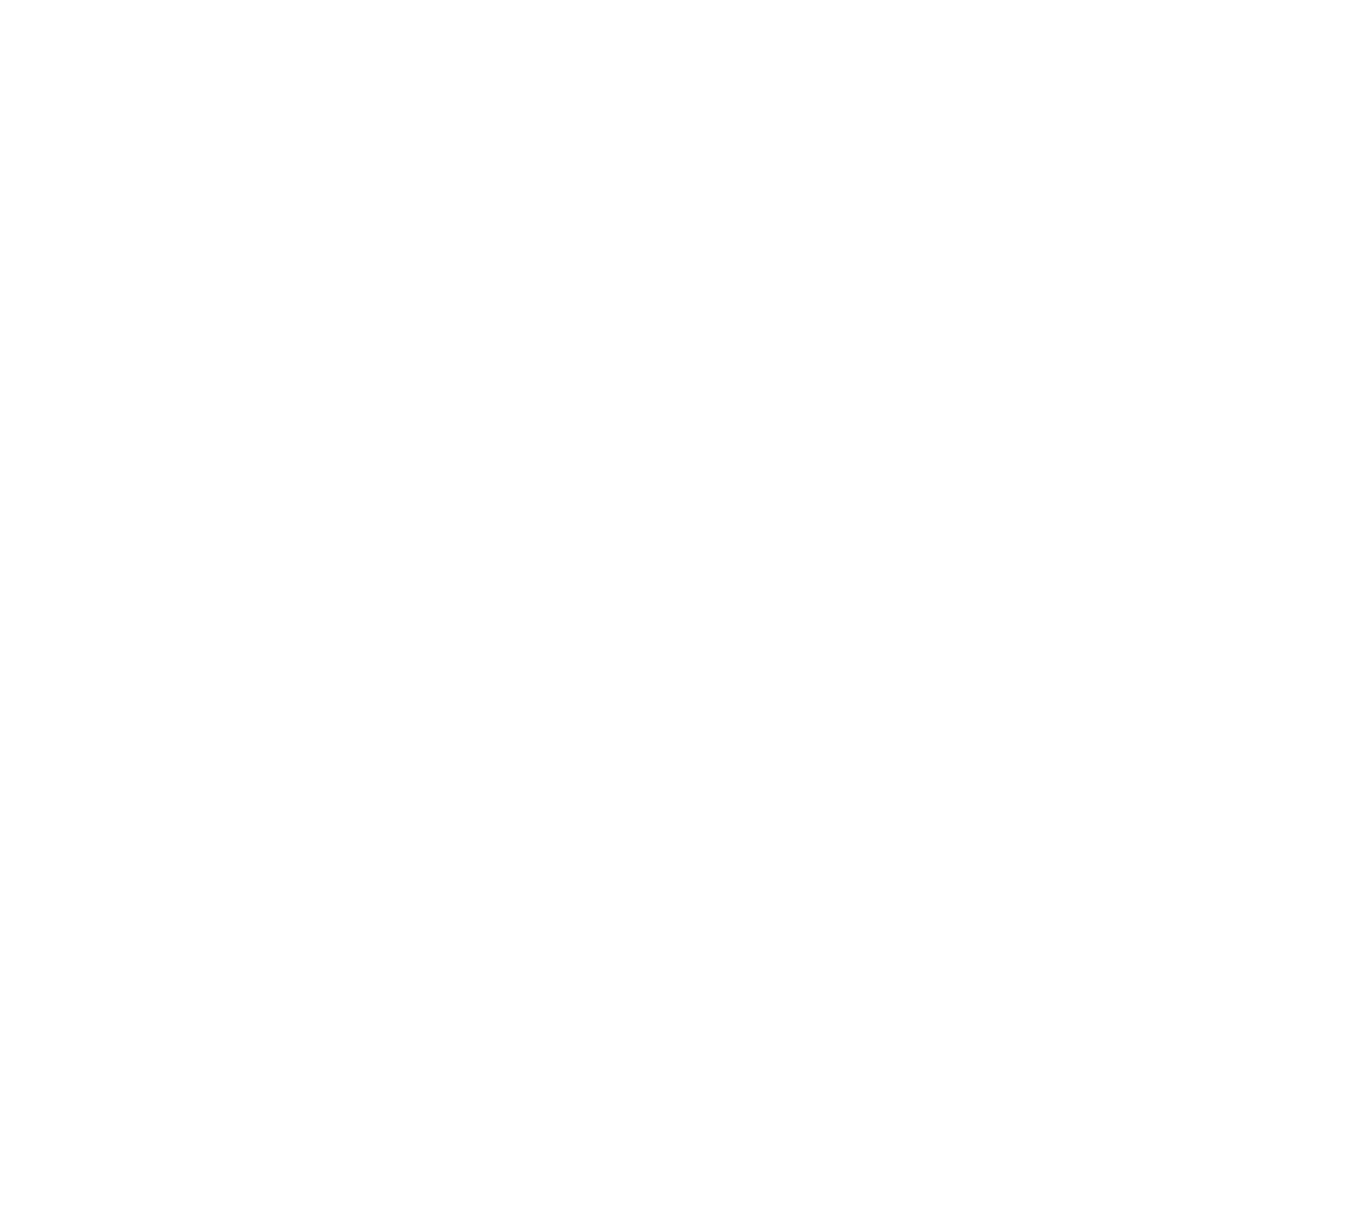 Airborne Gymnastics Club